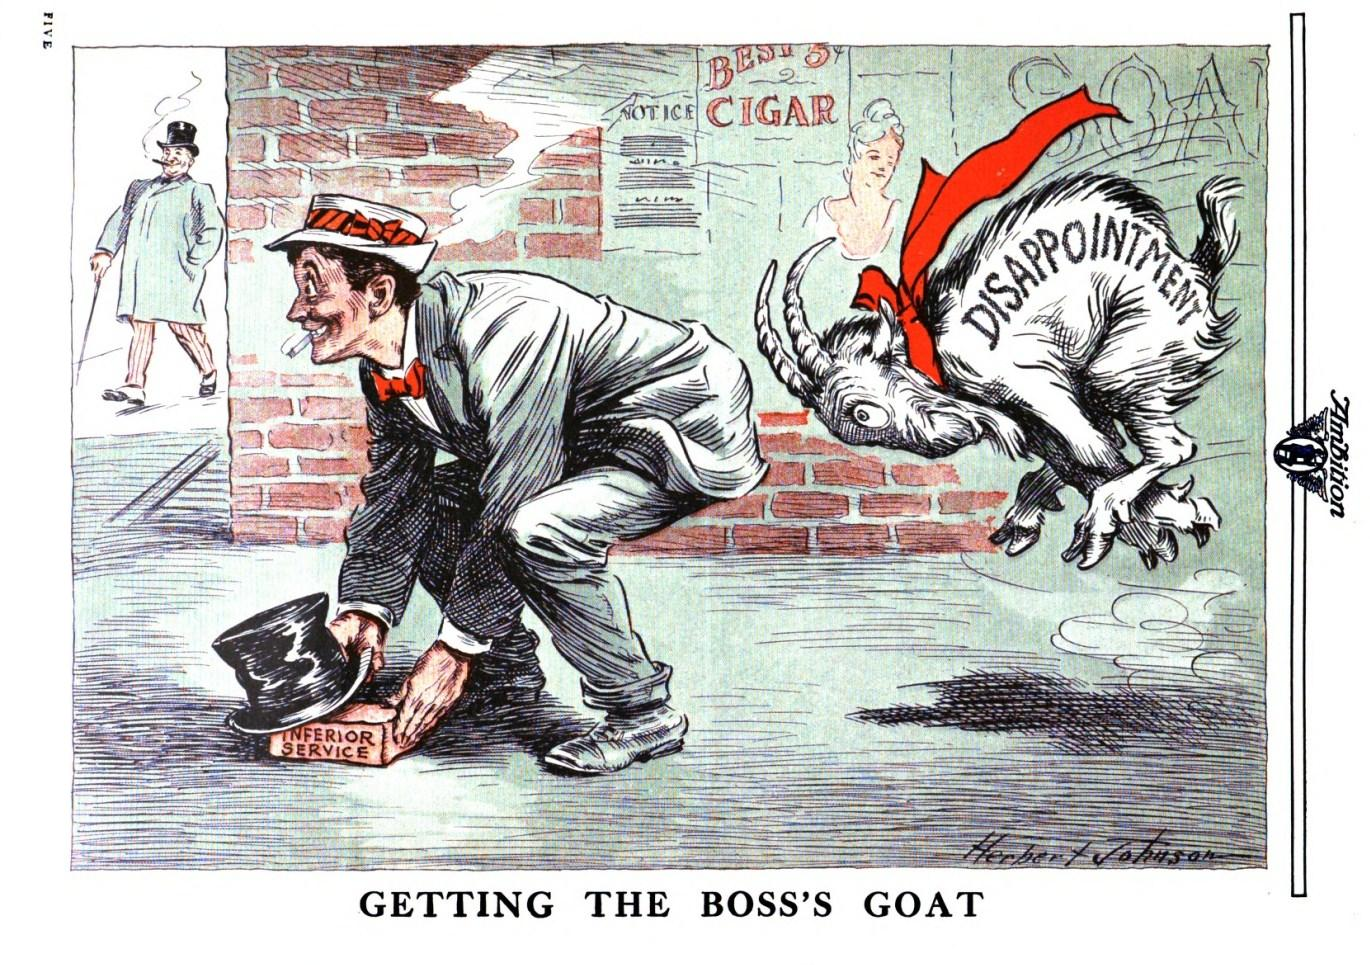 Early Sports and Pop Culture History Blog: Getting Goats, Losing